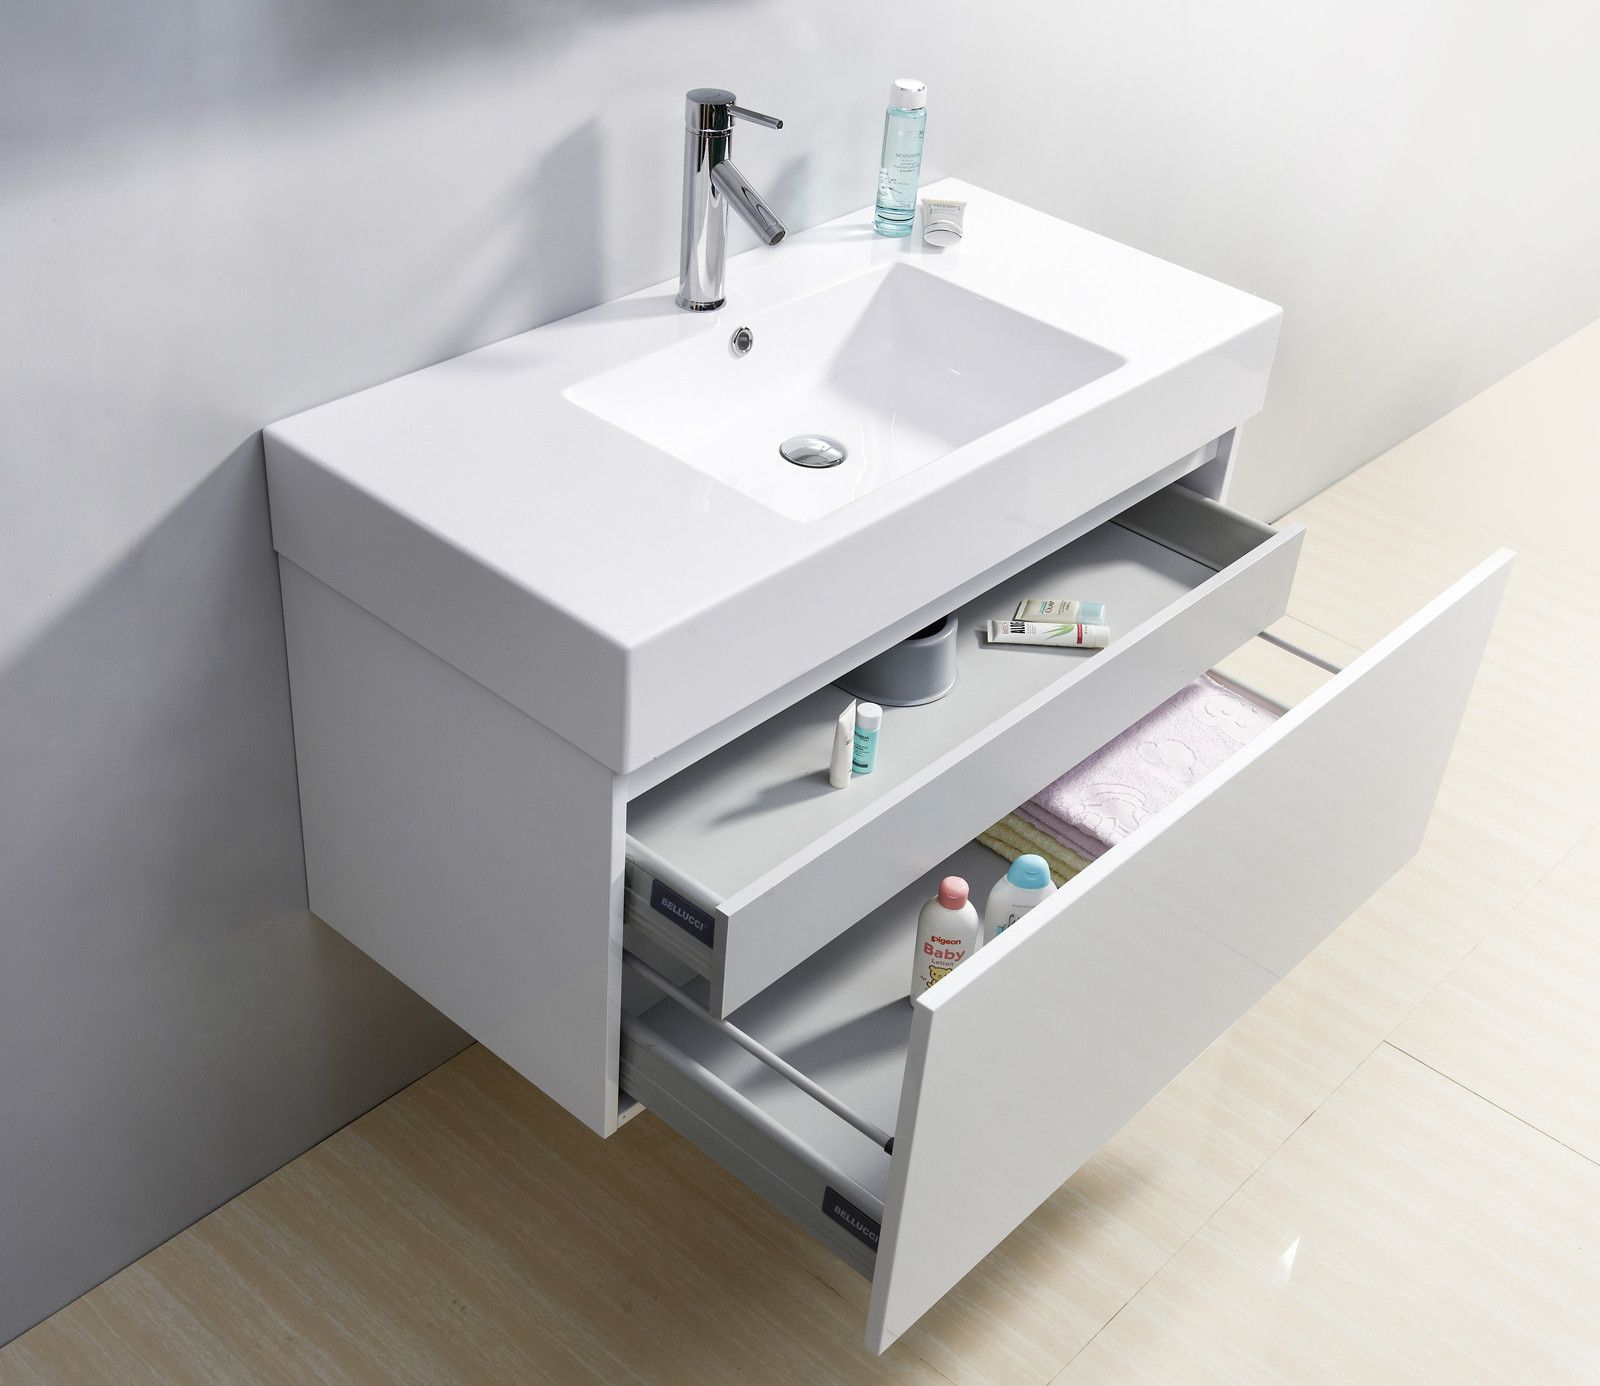 39 Glossy White Modern Floating Single Sink Bathroom Vanity Cabinet W Mirror Eba Floating Bathroom Vanities Small Bathroom Vanities Bathroom Vanity Makeover